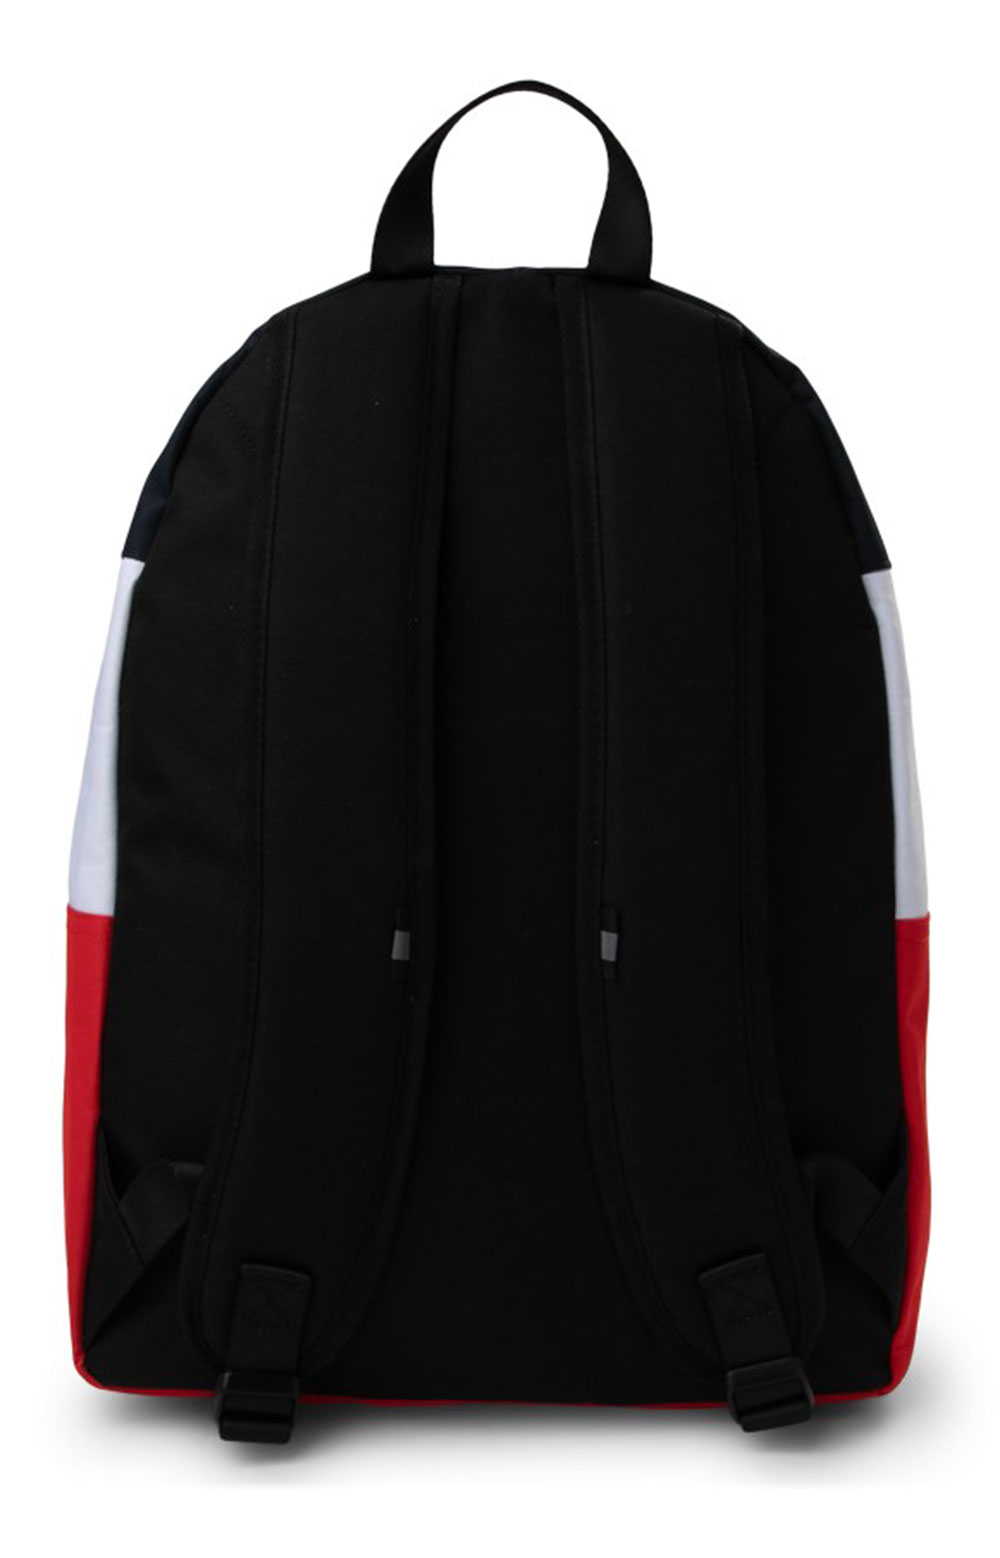 Verty Backpack - Peacoat/White/Red 2